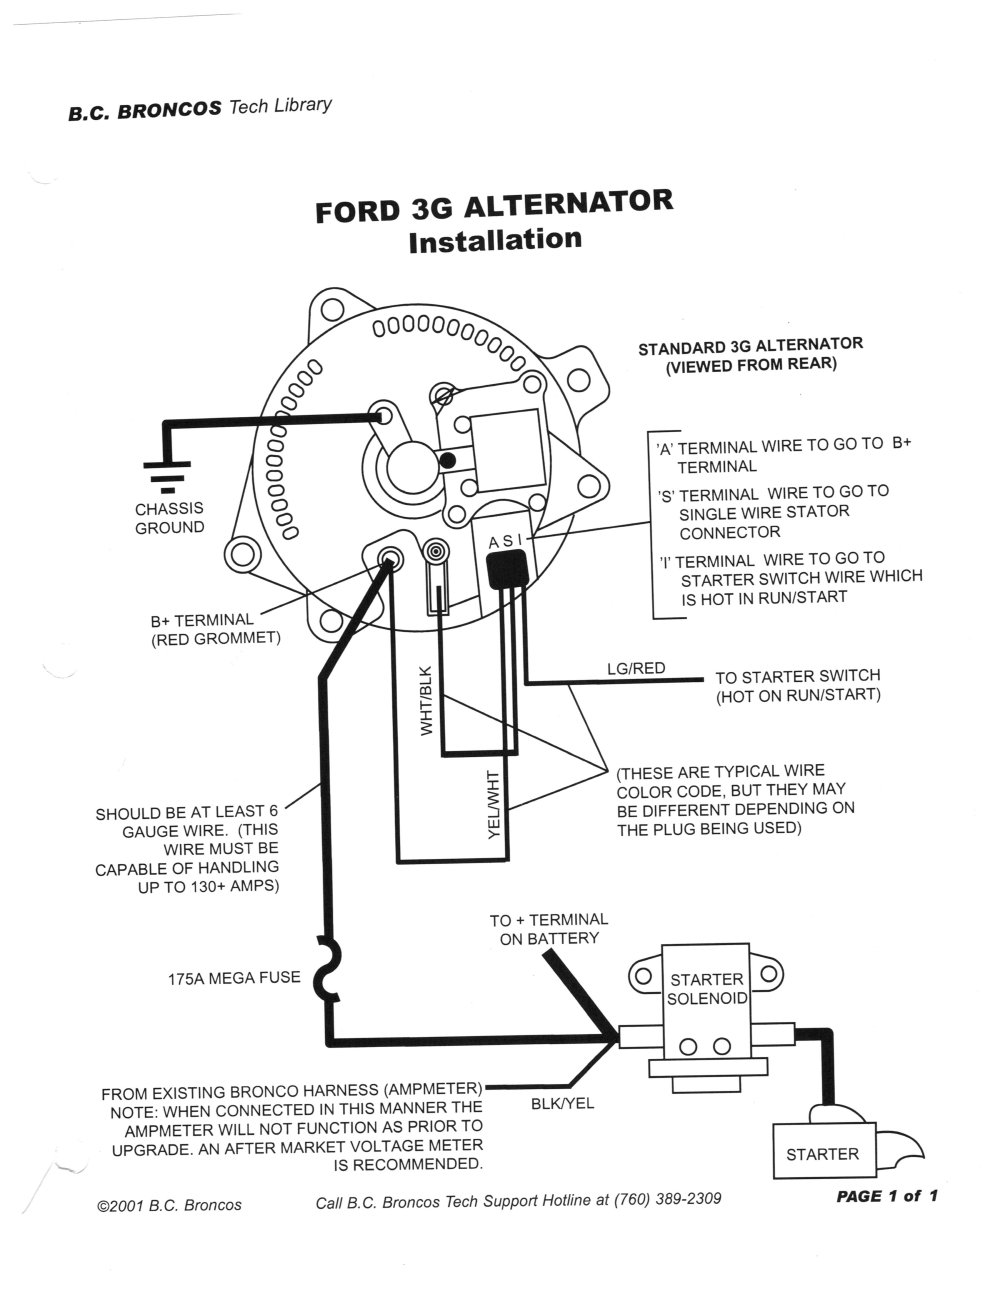 medium resolution of 1993 f150 alternator wiring diagram wiring diagram fascinating 93 ford f 150 alternator wiring connector free download wiring